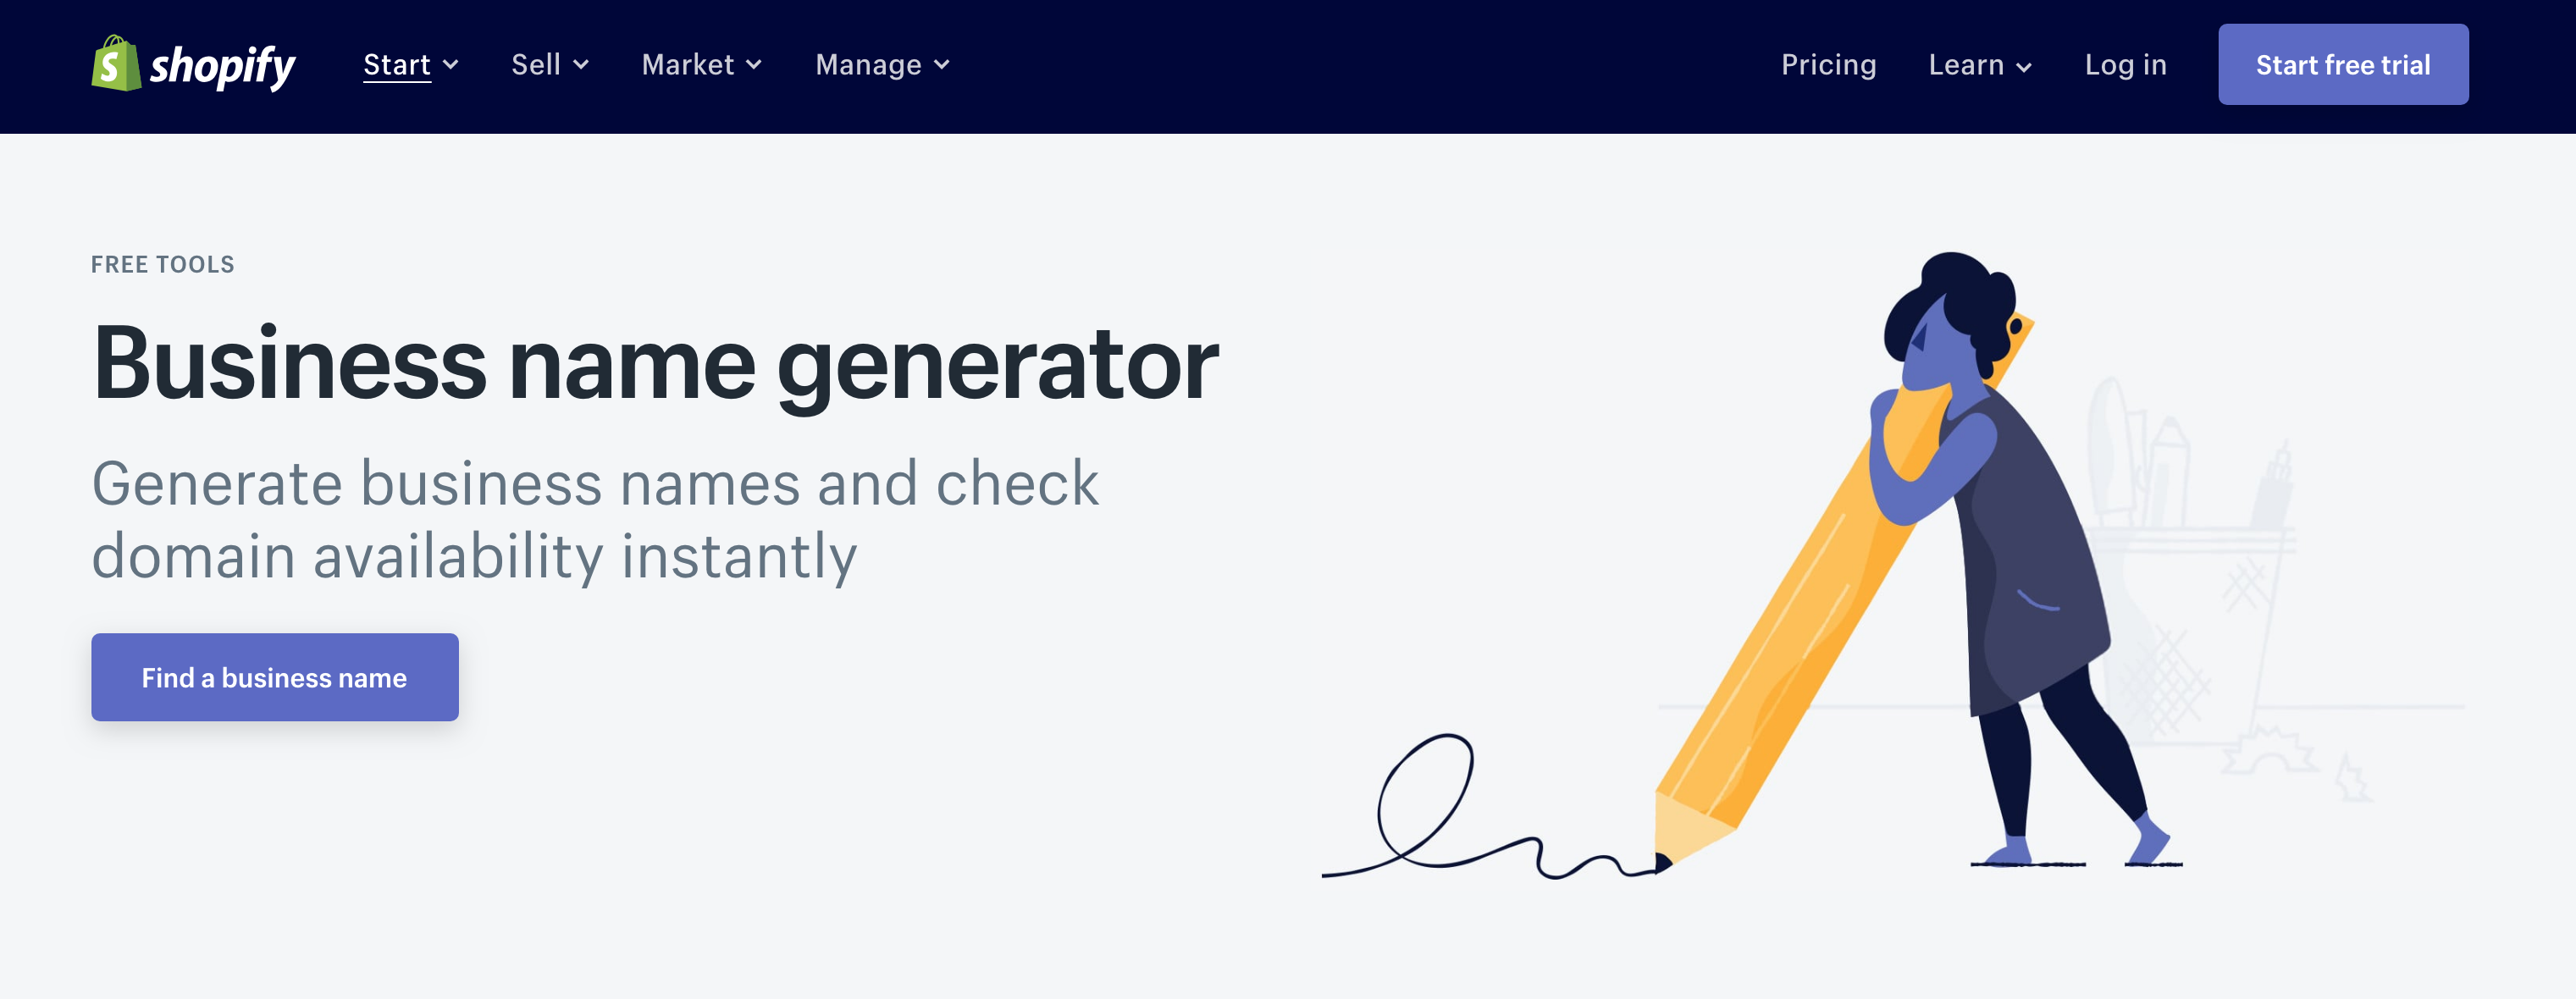 shopify-business-generator